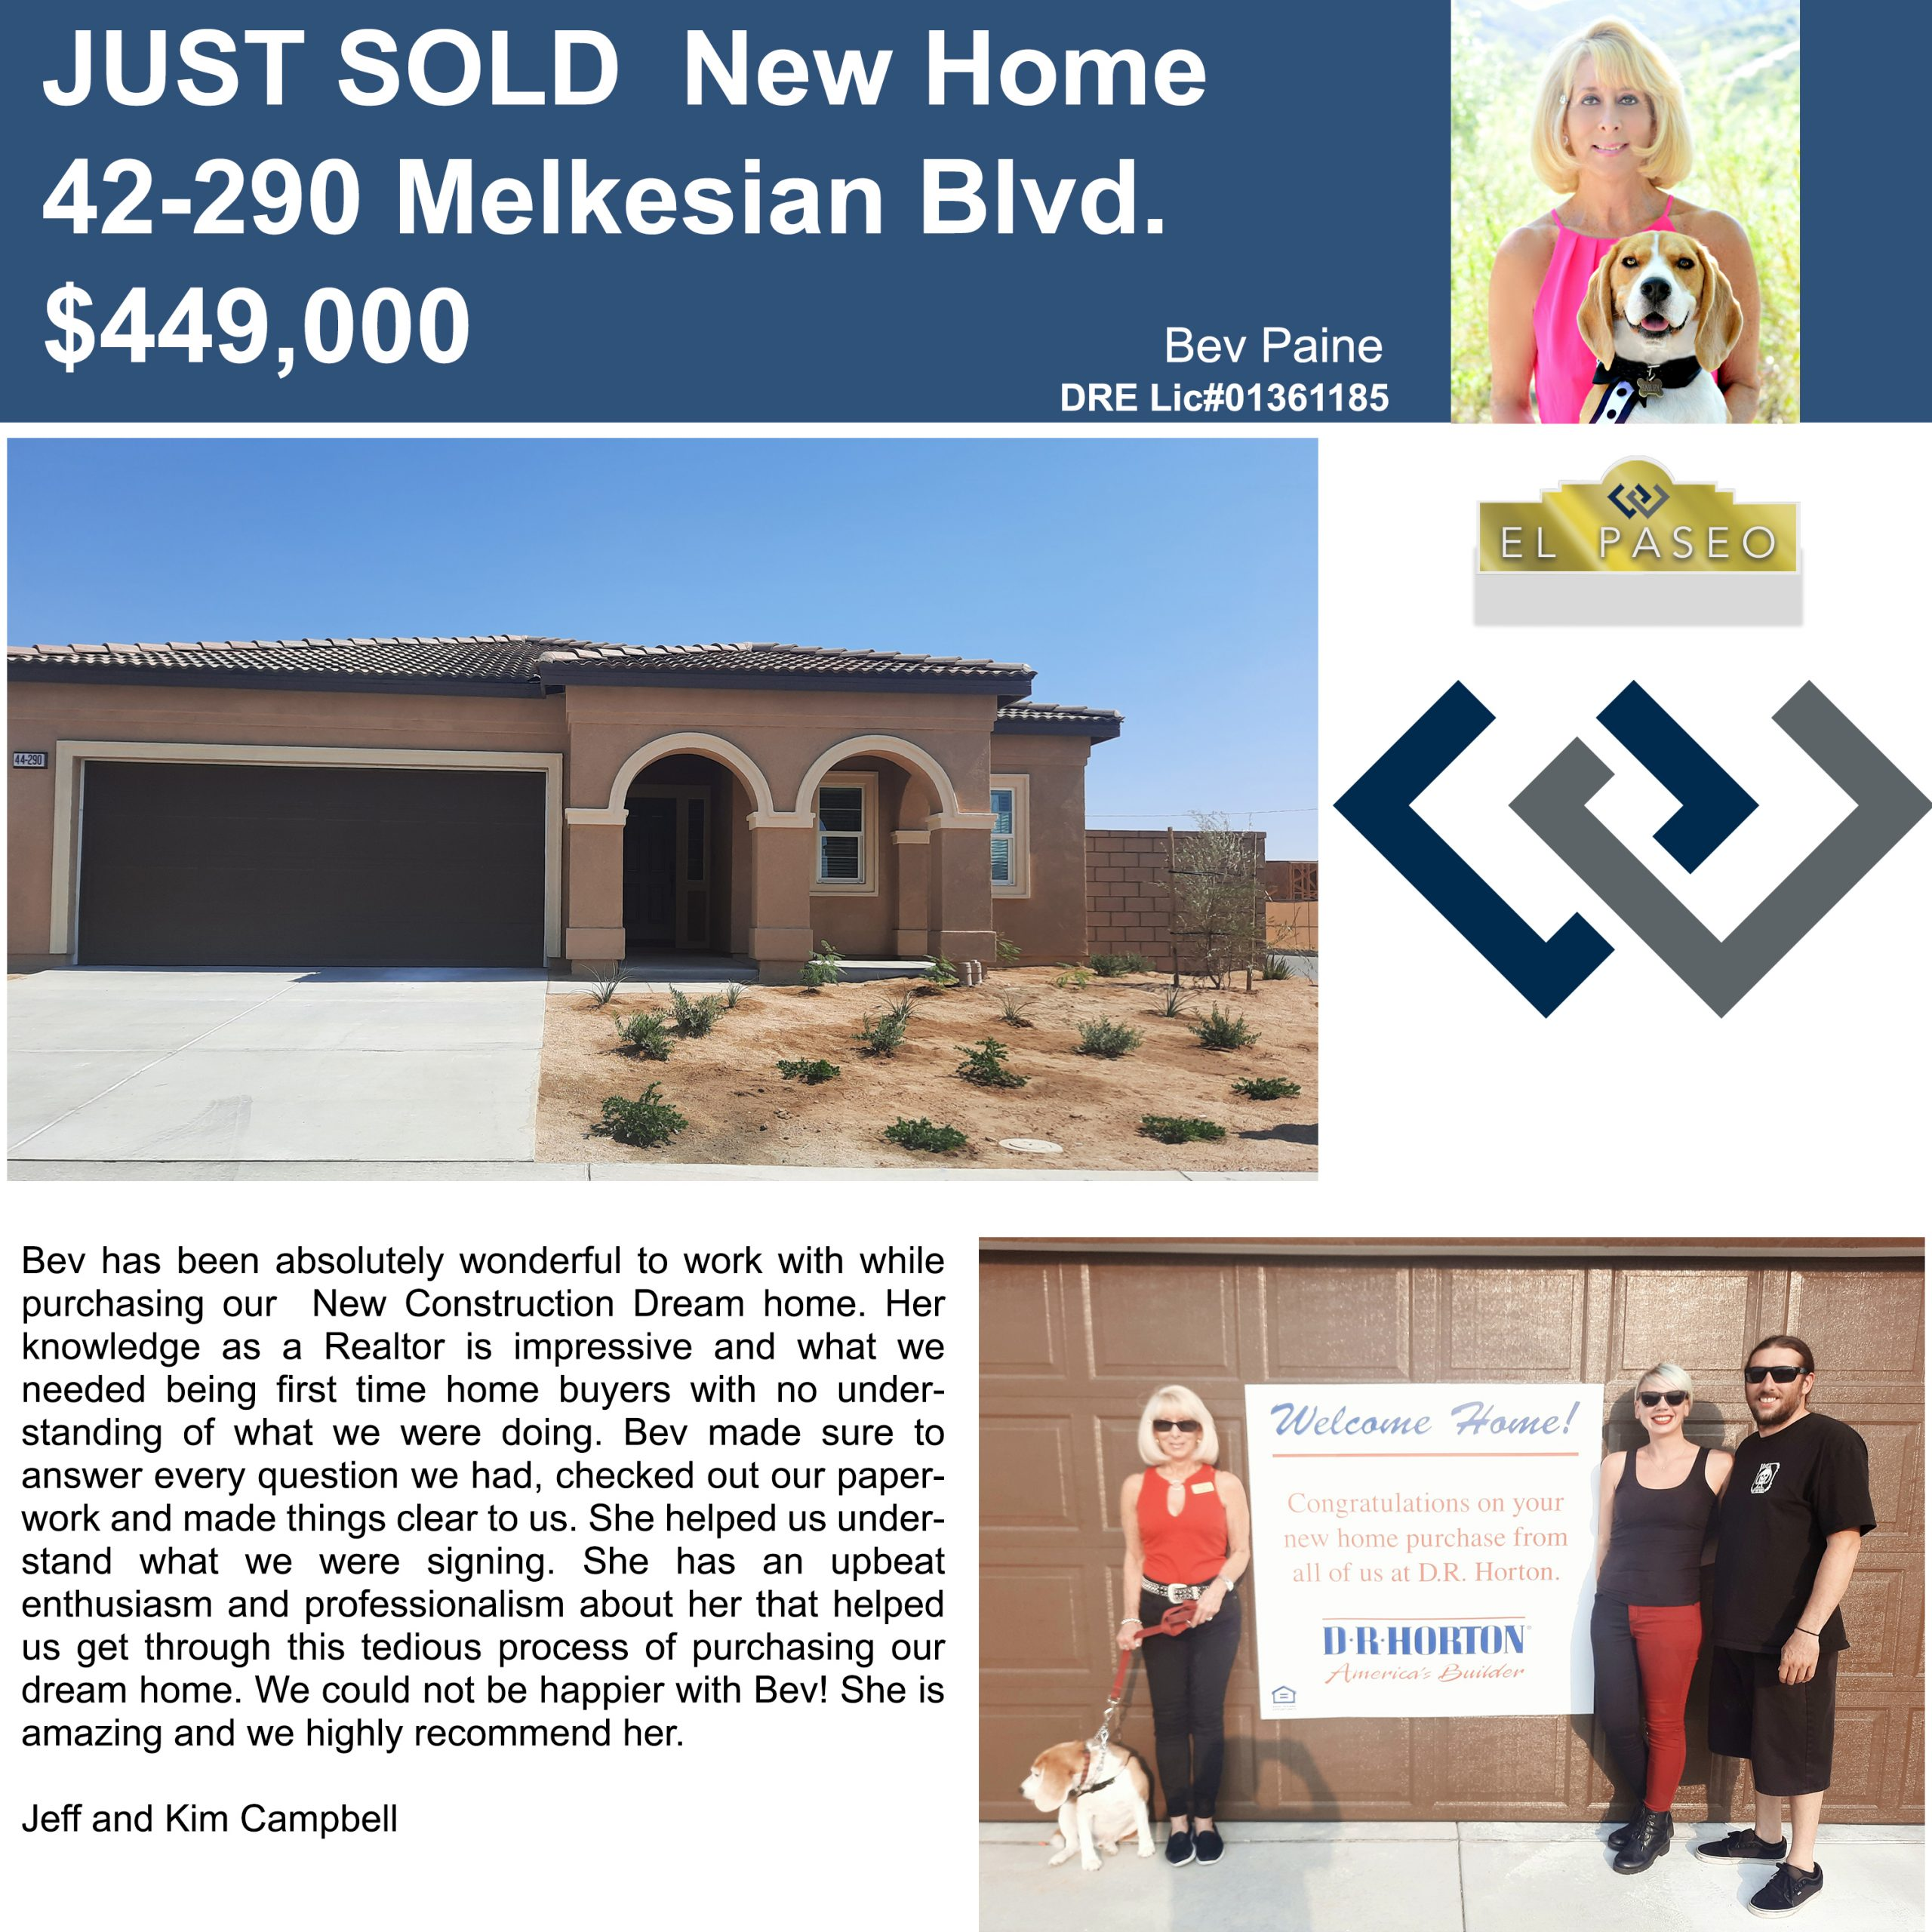 JUST SOLD NEW HOME 42-290 MELKESIAN BLVD $449,000 BEV PAIN Bev has been absolutely wonderful to work with while purchasing our New Construction Dream home. Her knowledge as a Realtor is impressive and what we needed being first time home buyers with no understanding of what we were doing. Bev made sure to answer every question we had, checked out our paperwork and made things clear to us. She helped us understand what we were signing. She has an upbeat enthusiasm and professionalism about her that helped us get through this tedious process of purchasing our dream home. We could not be happier with Bev! She is amazing and we highly recommend her. Jeff and Kim Campbell